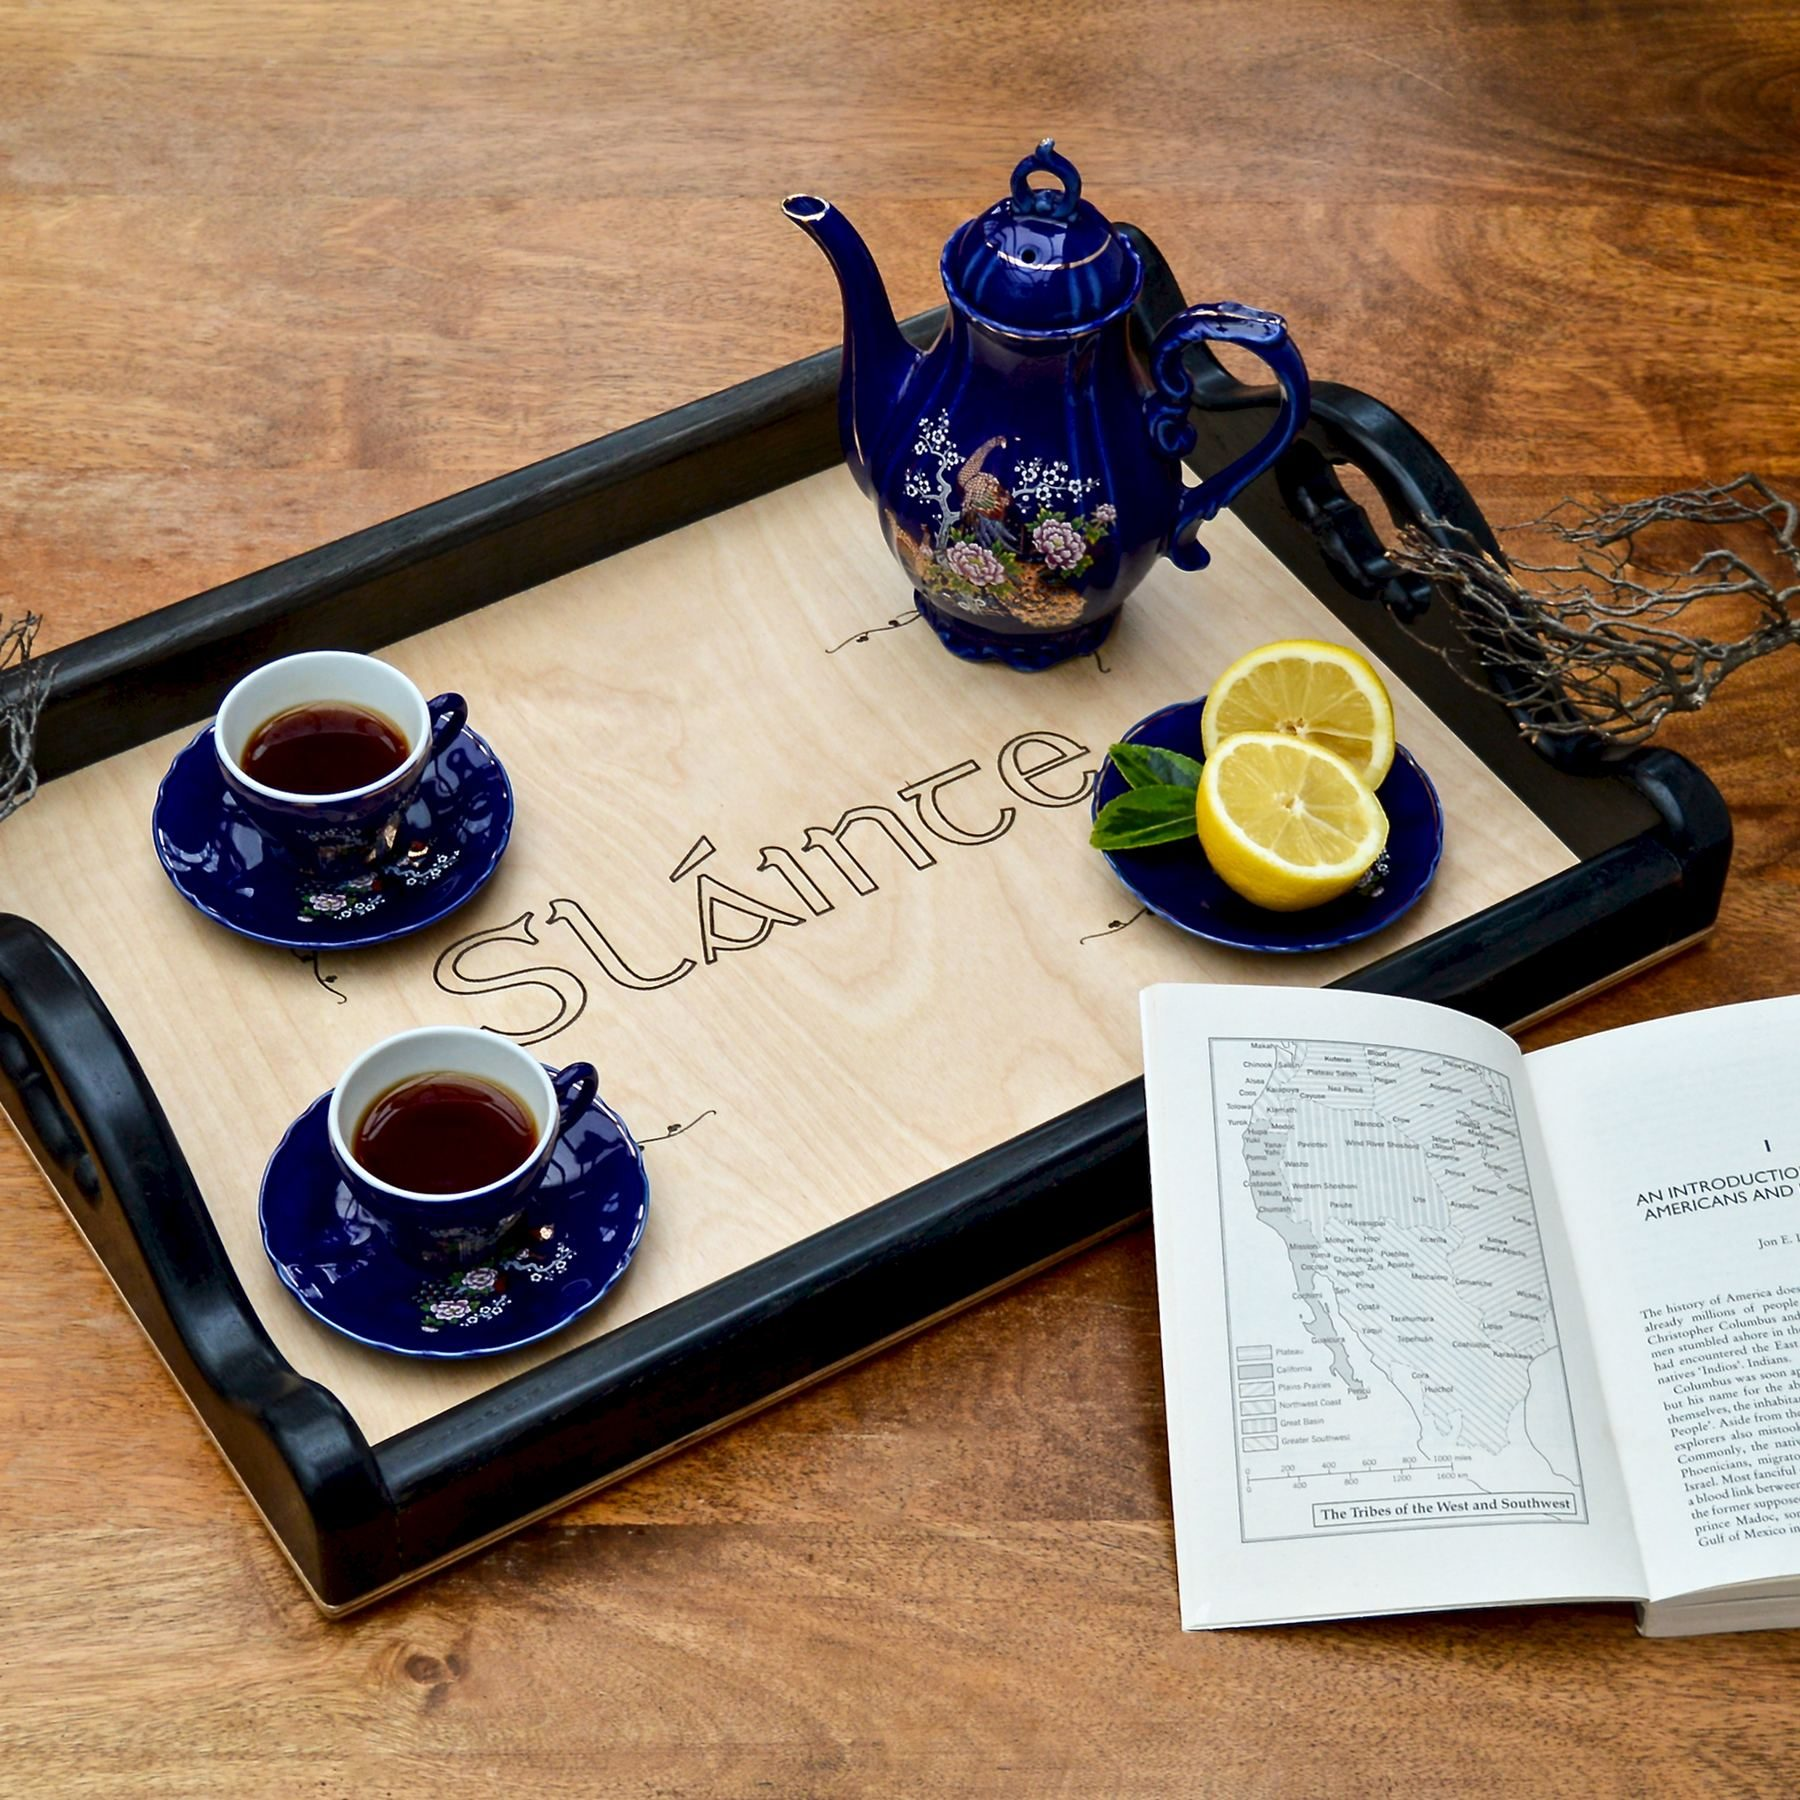 Hanmade wooden tray engraved with the Irish word Sláinte. Two blue cups and a Japanese tea pot on top.